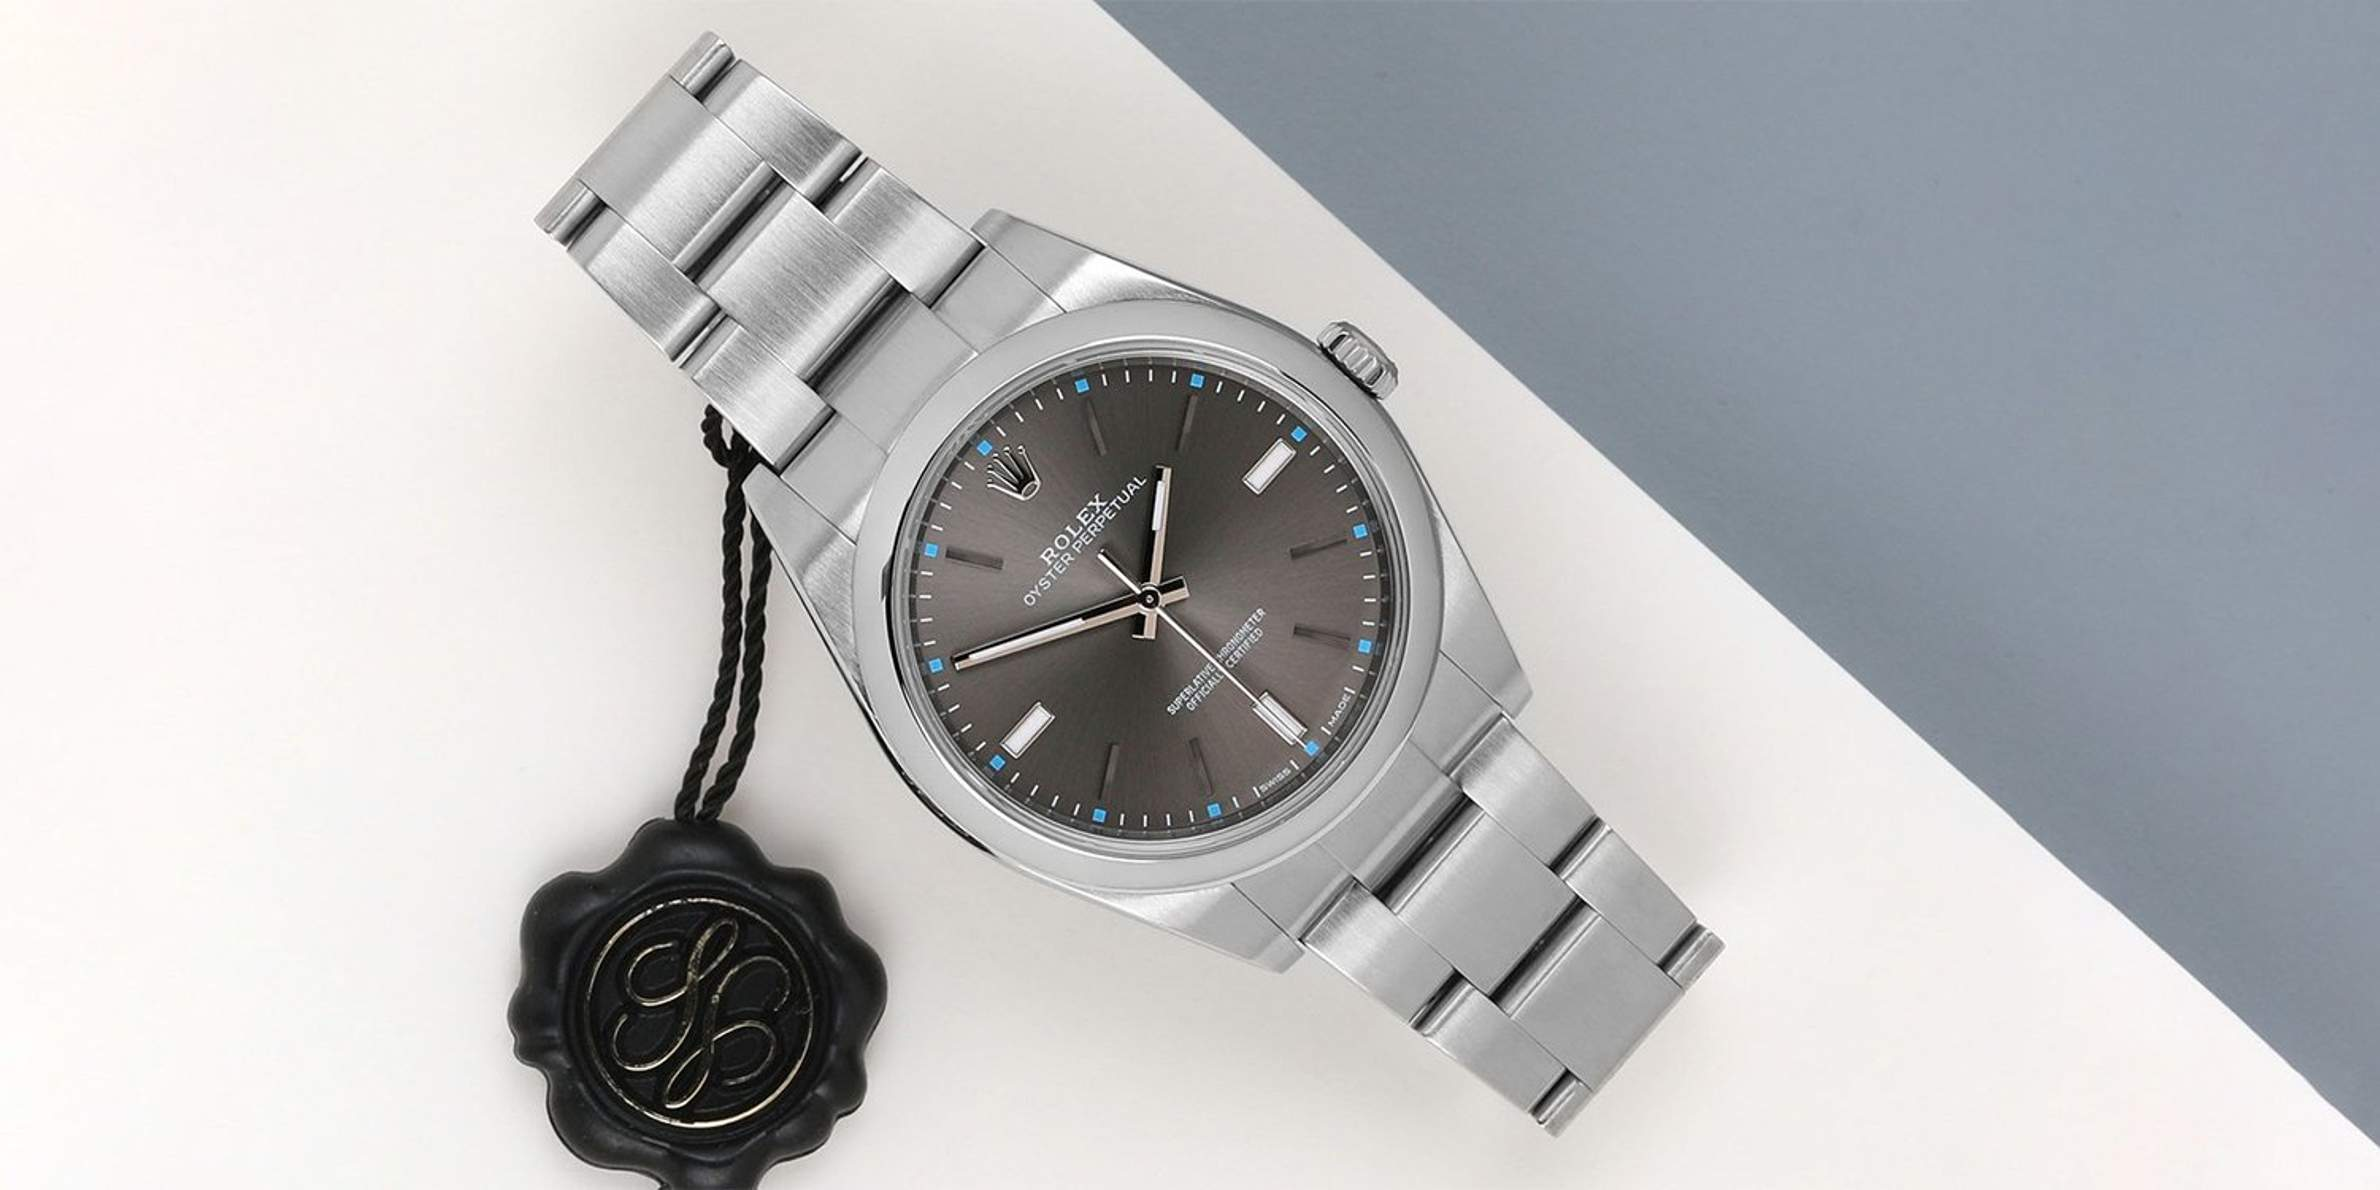 Rolex-to-Invest-In–2-1